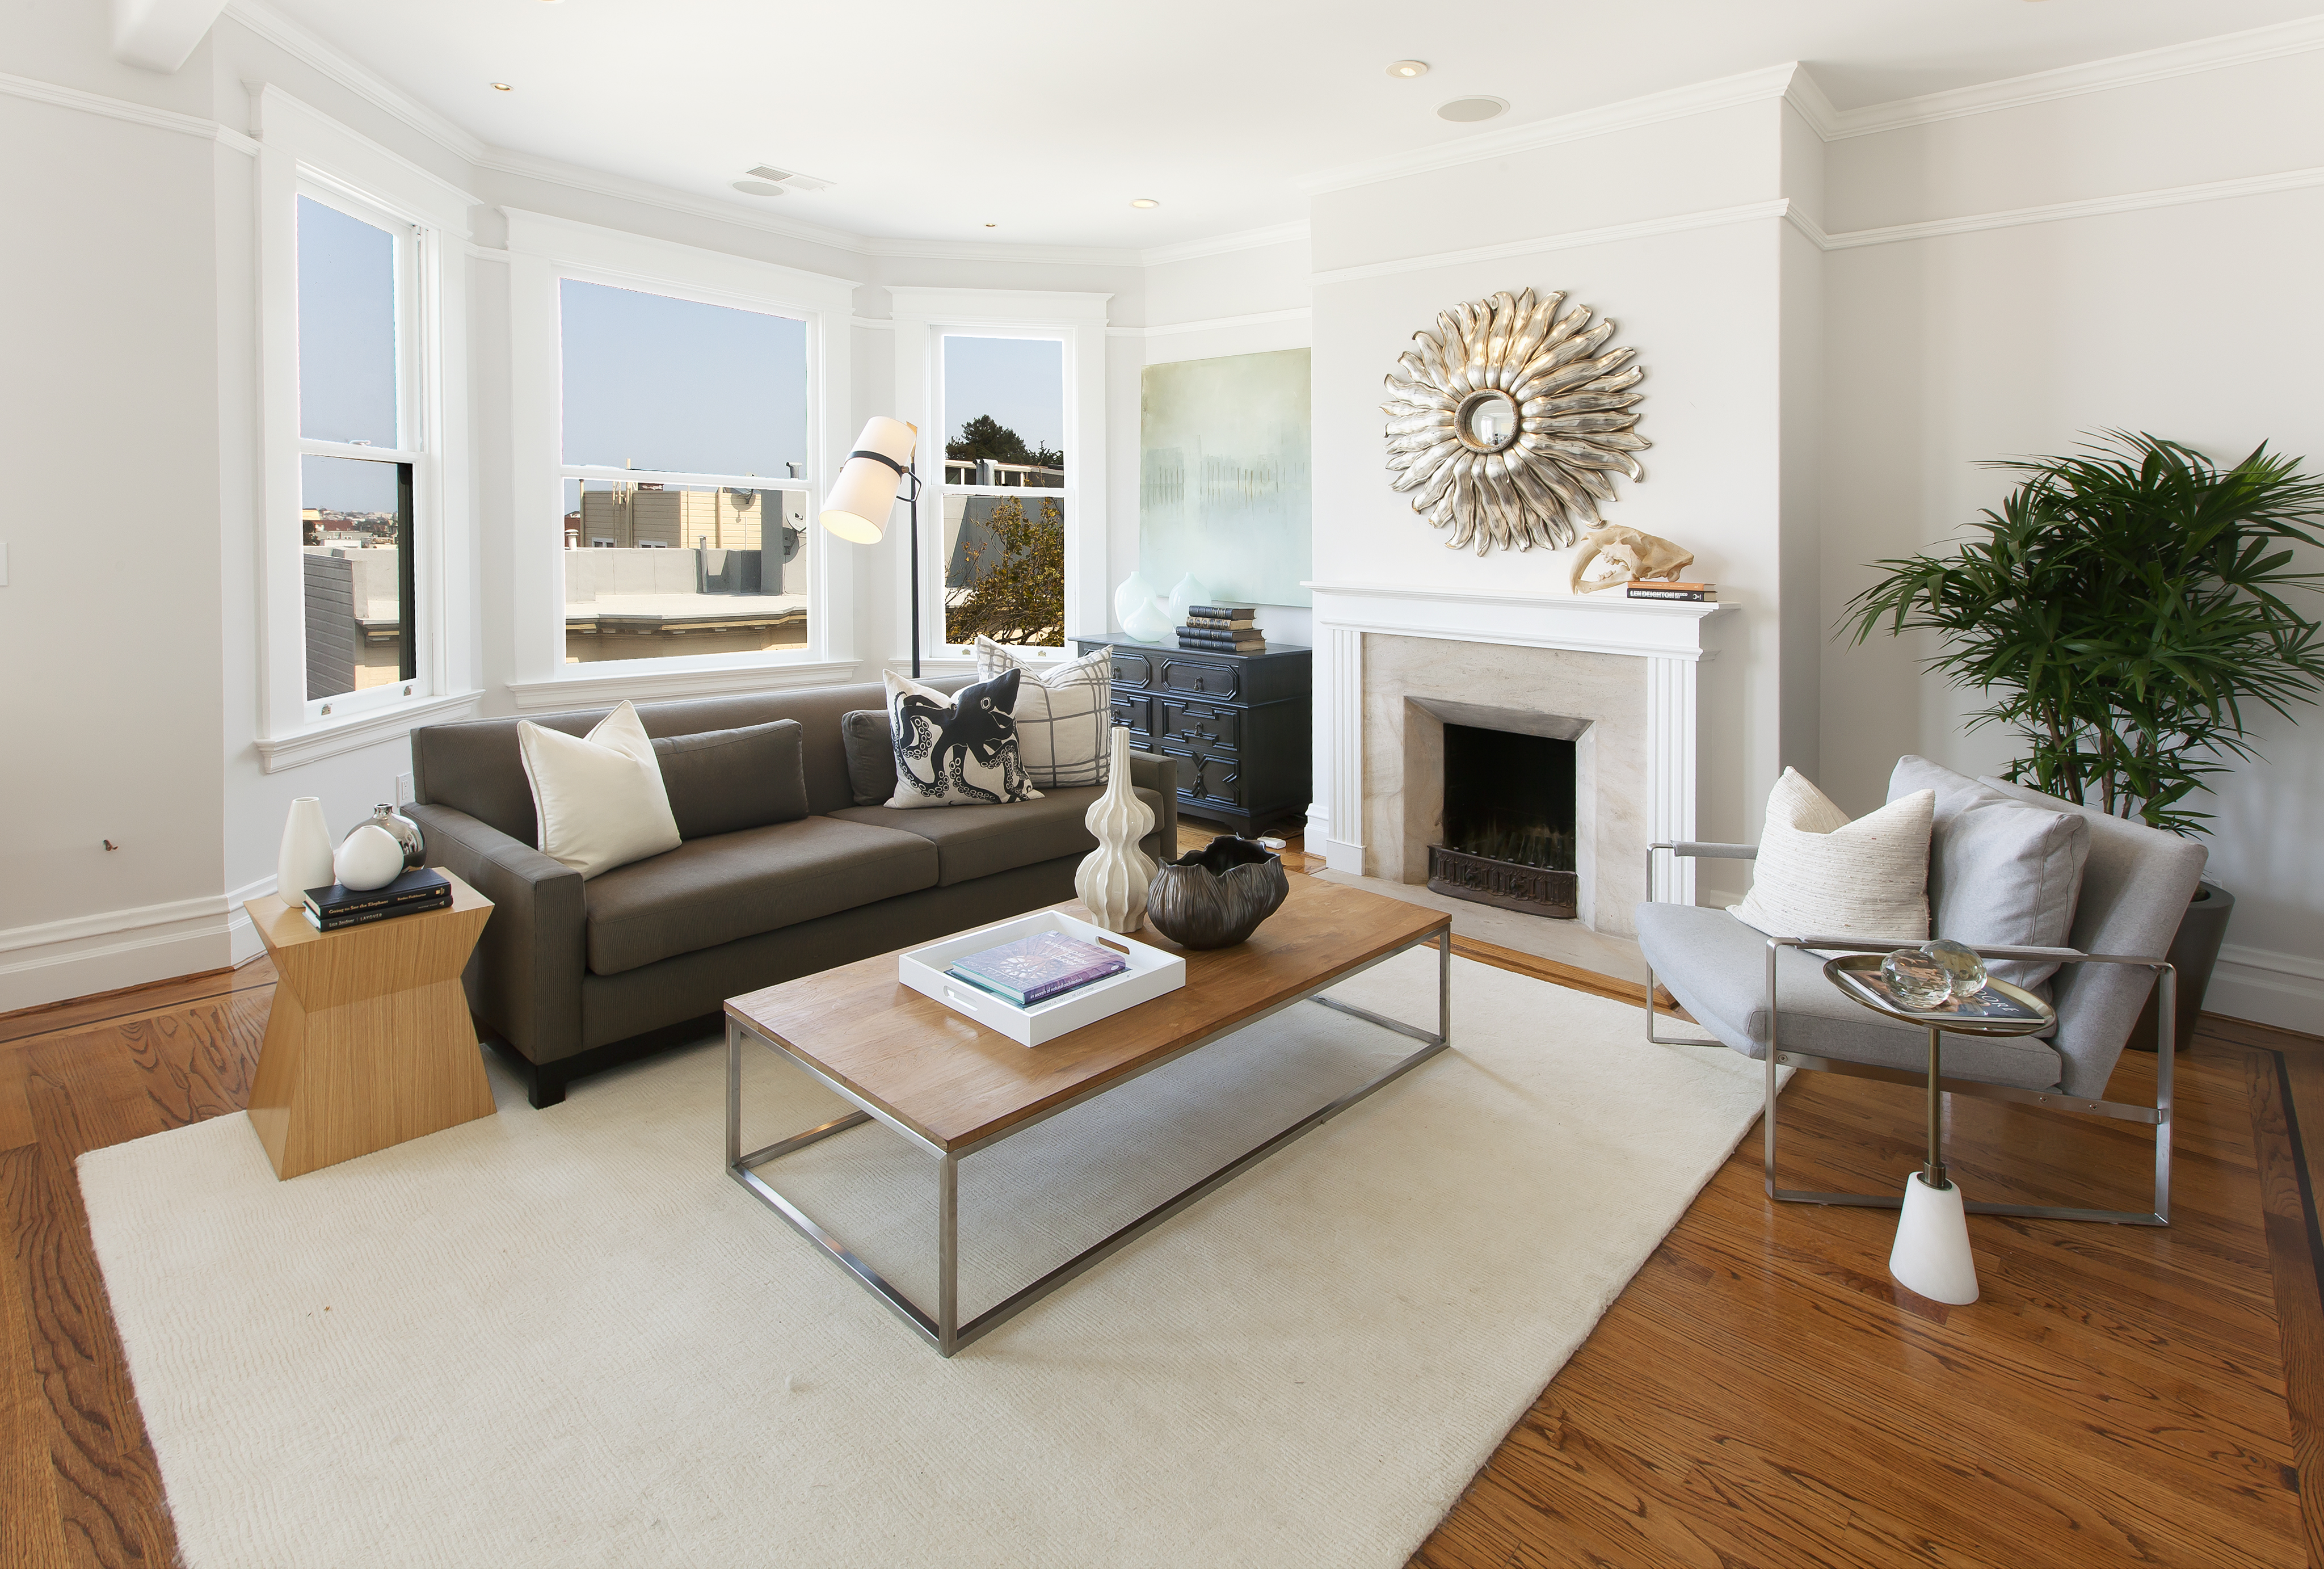 For Sale 29 Rivoli Top Floor Edwardian View Condo In Cole Valley